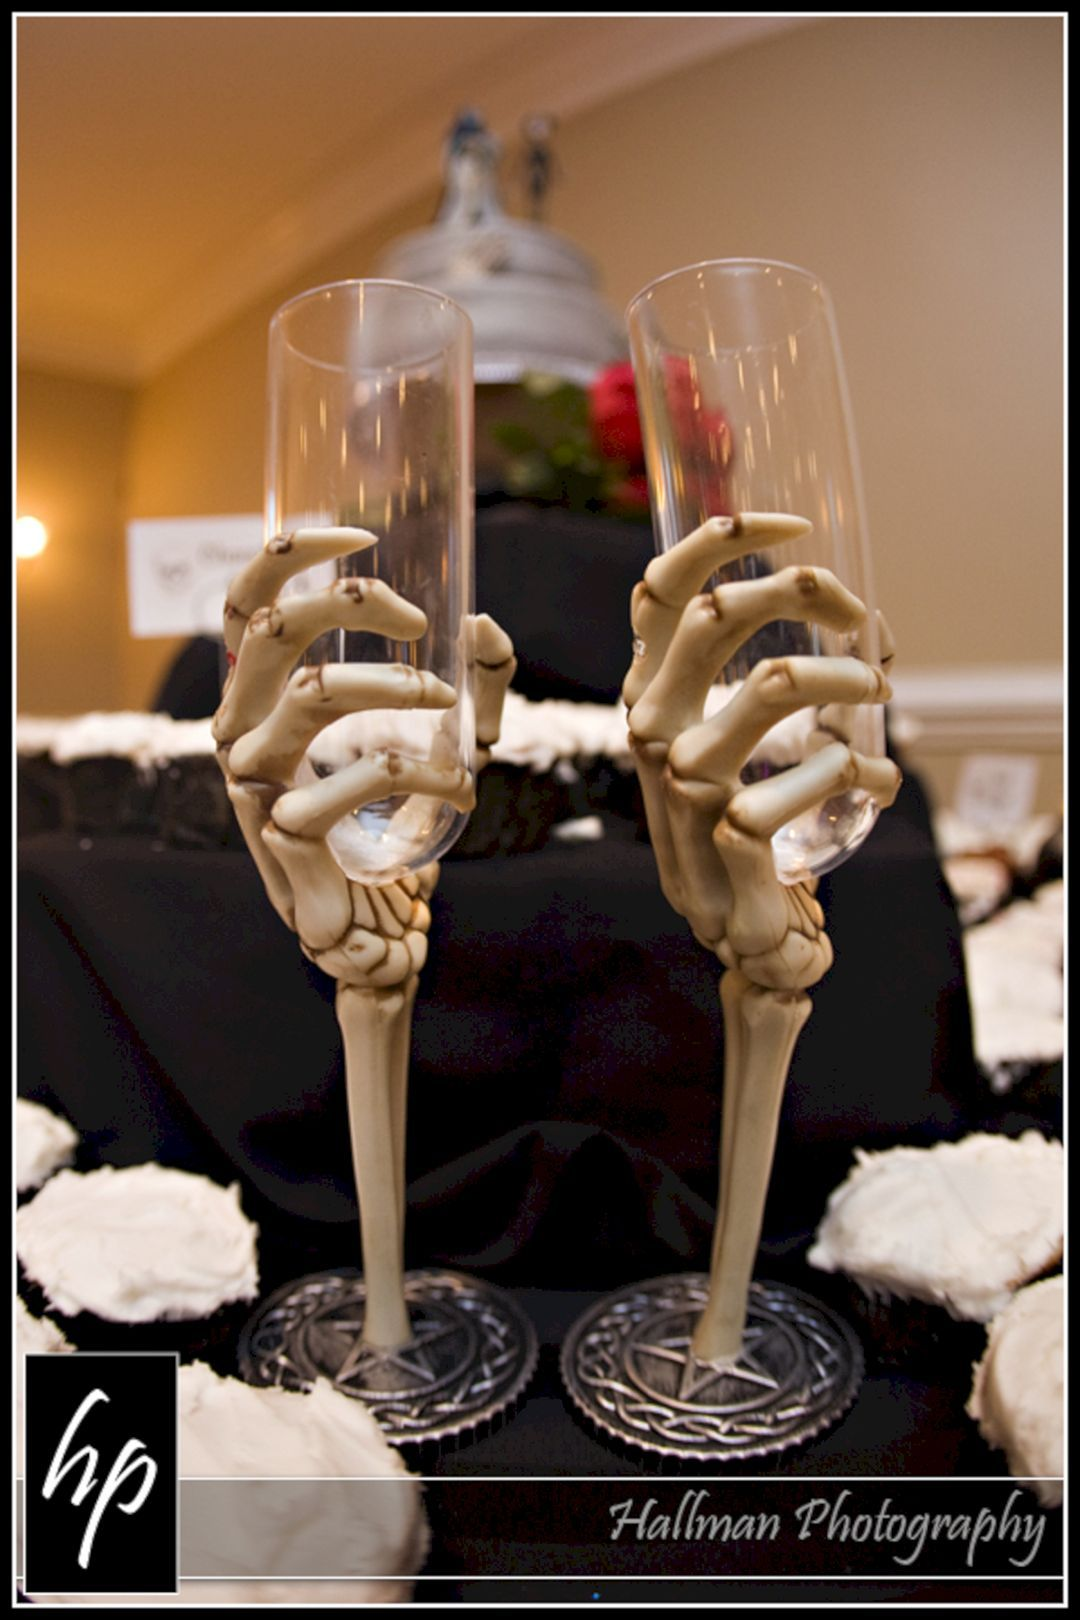 35 Most Scary Halloween Wedding Decor Ideas One Day 3